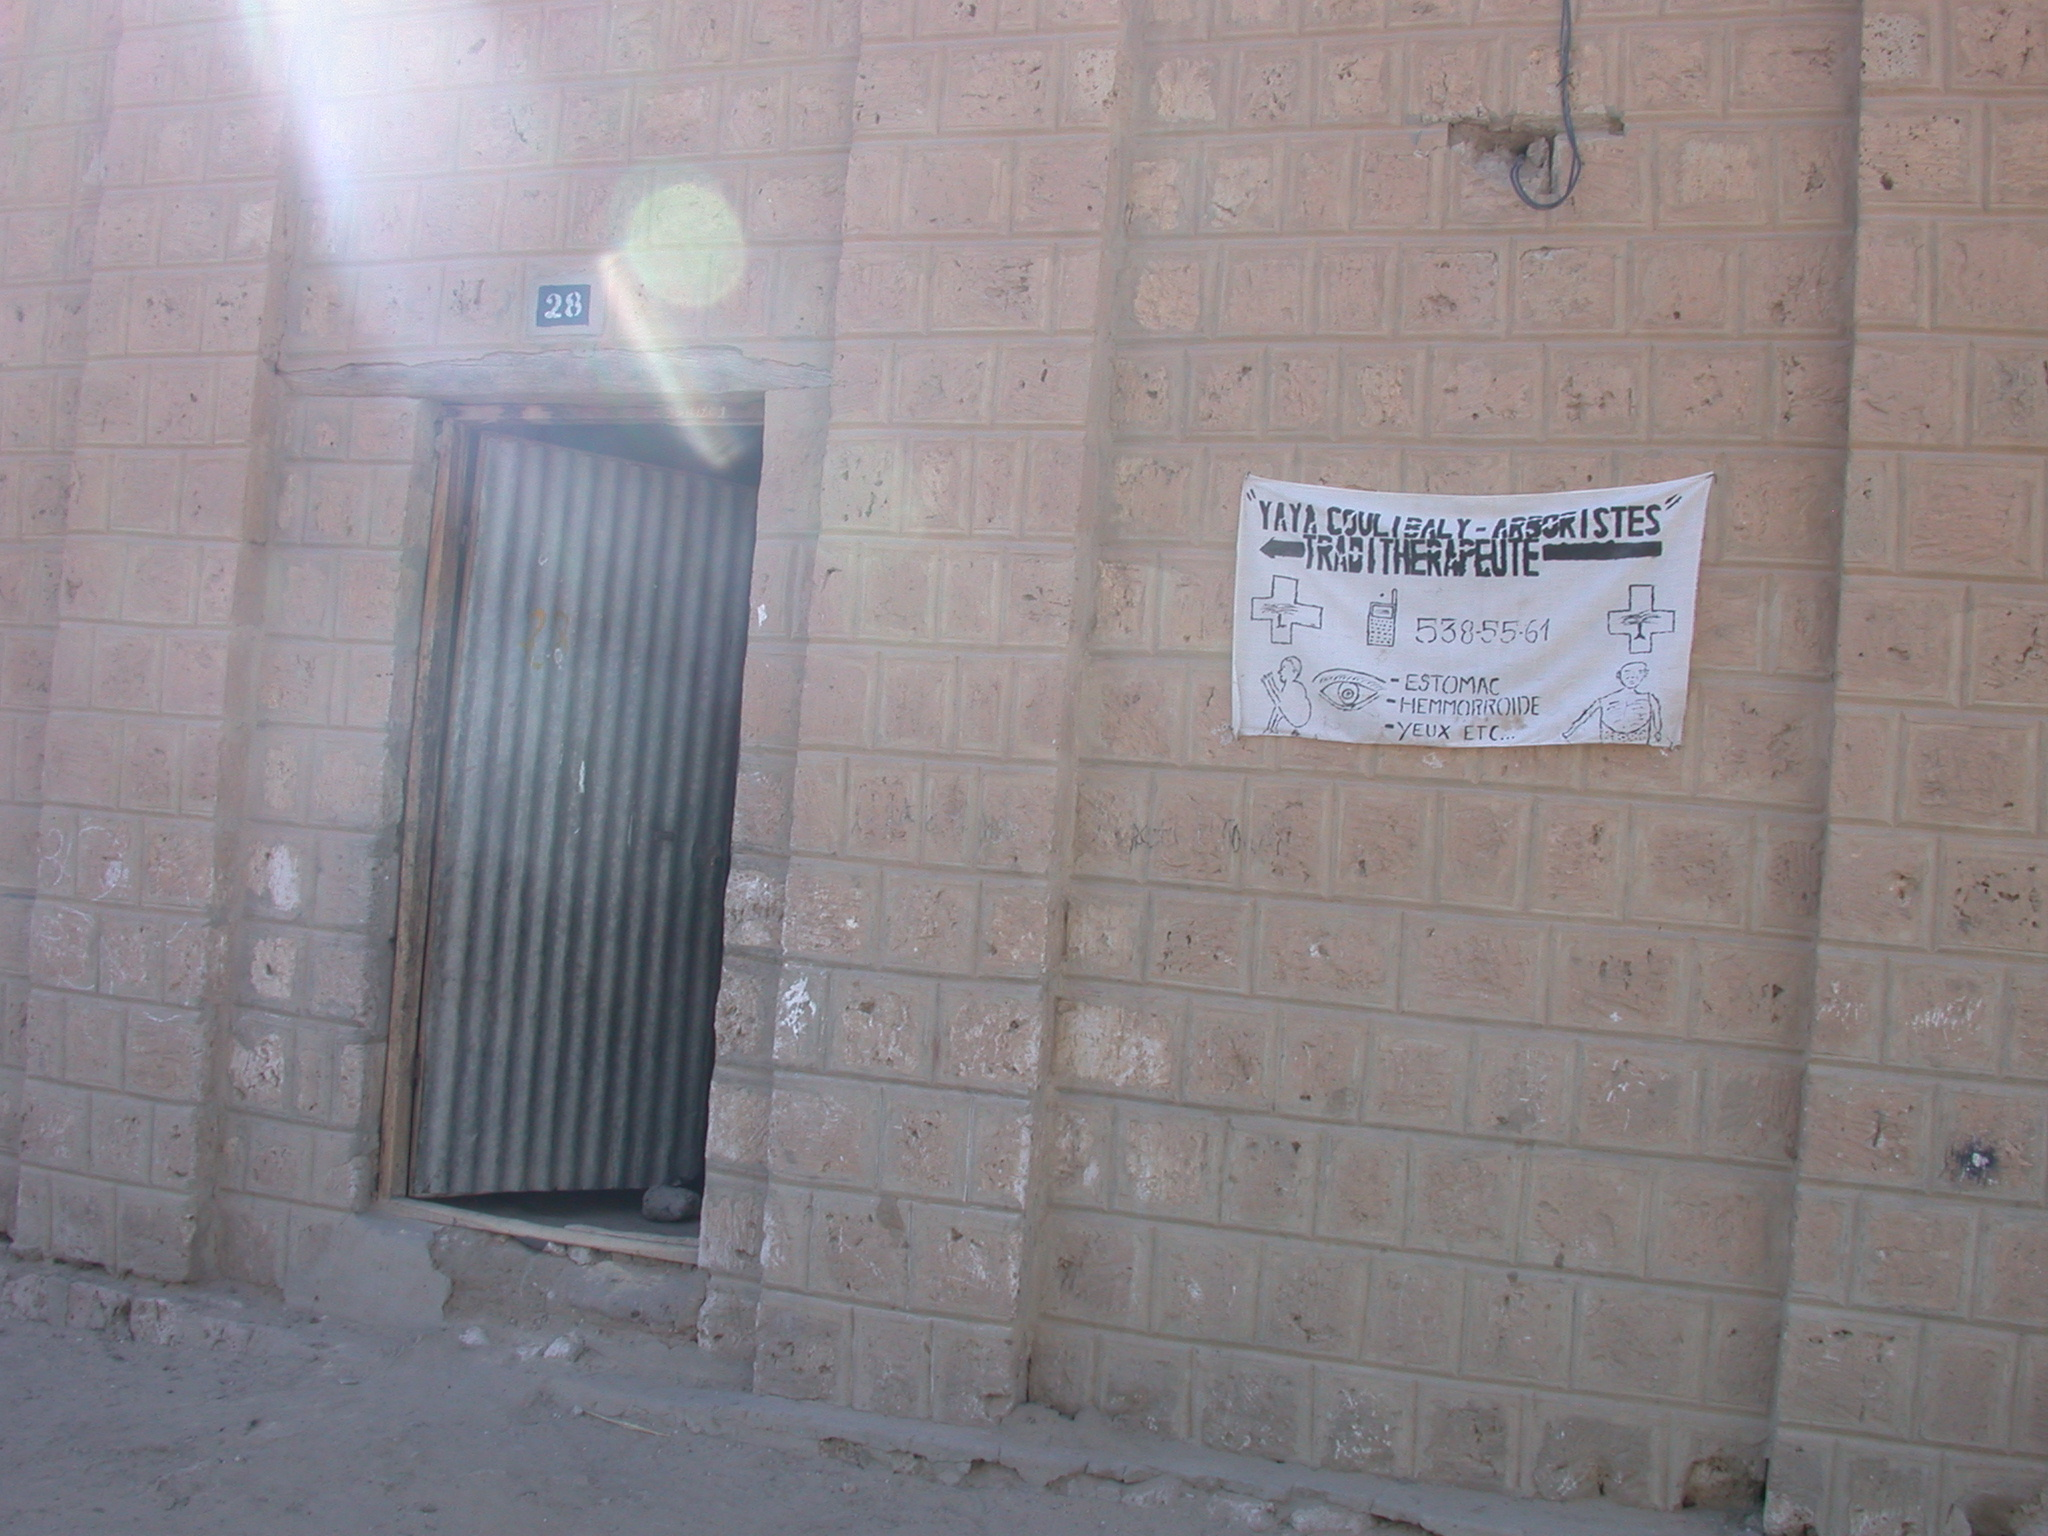 Office of Traditional Therapist Advertising Stomach, Hemorrhoid, and Eye Treatments, Timbuktu, Mali